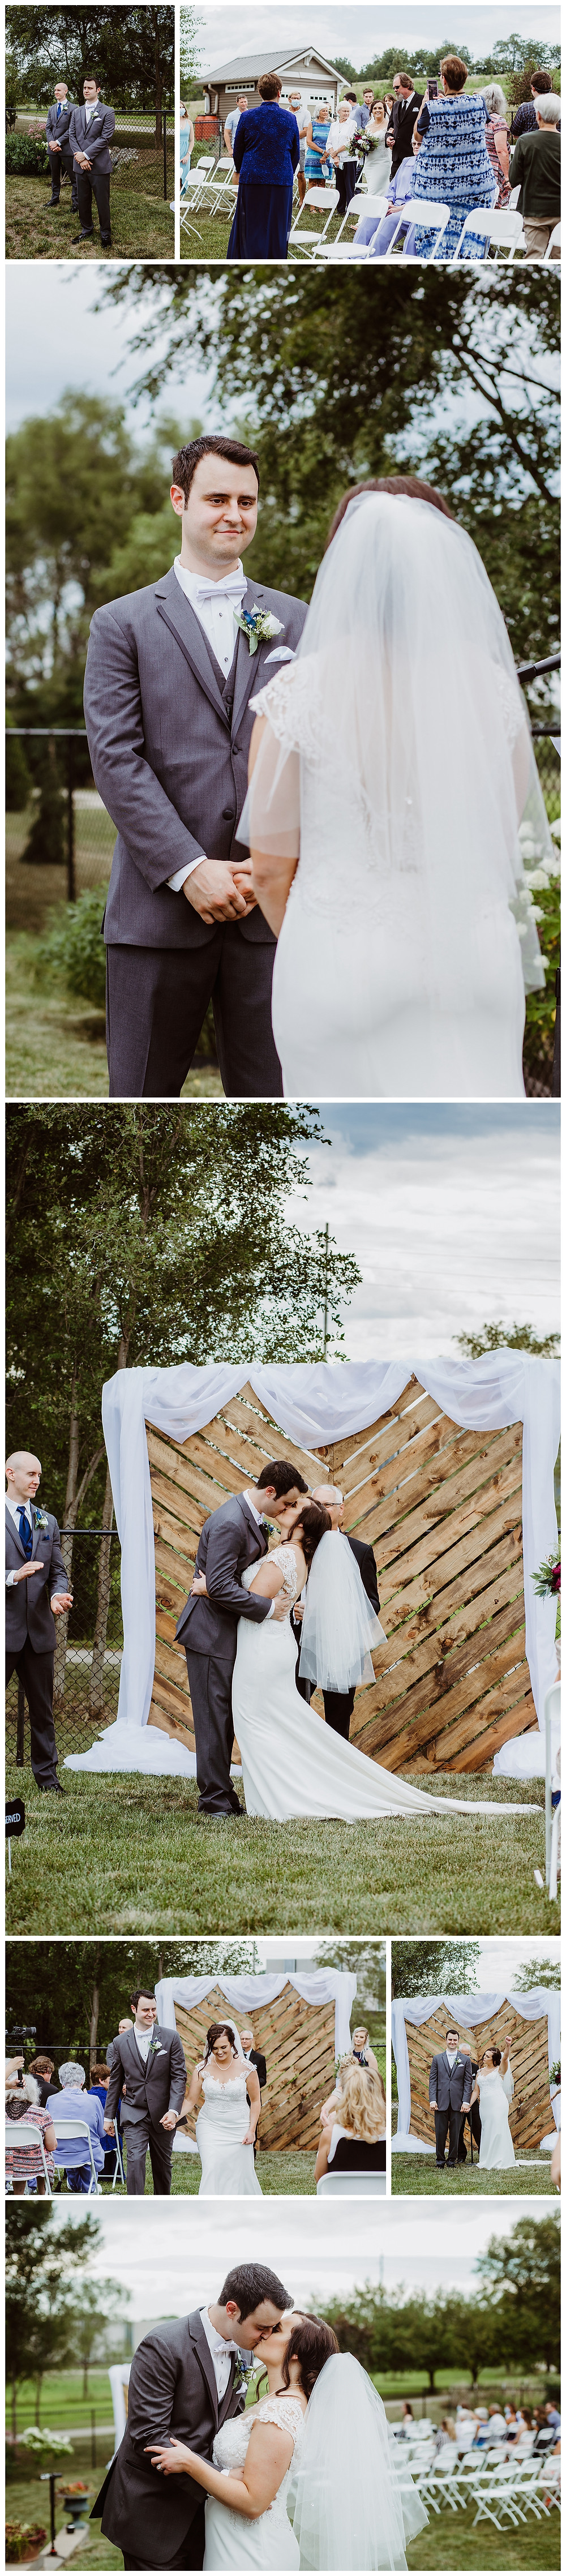 Intimate Iowa Wedding ceremony